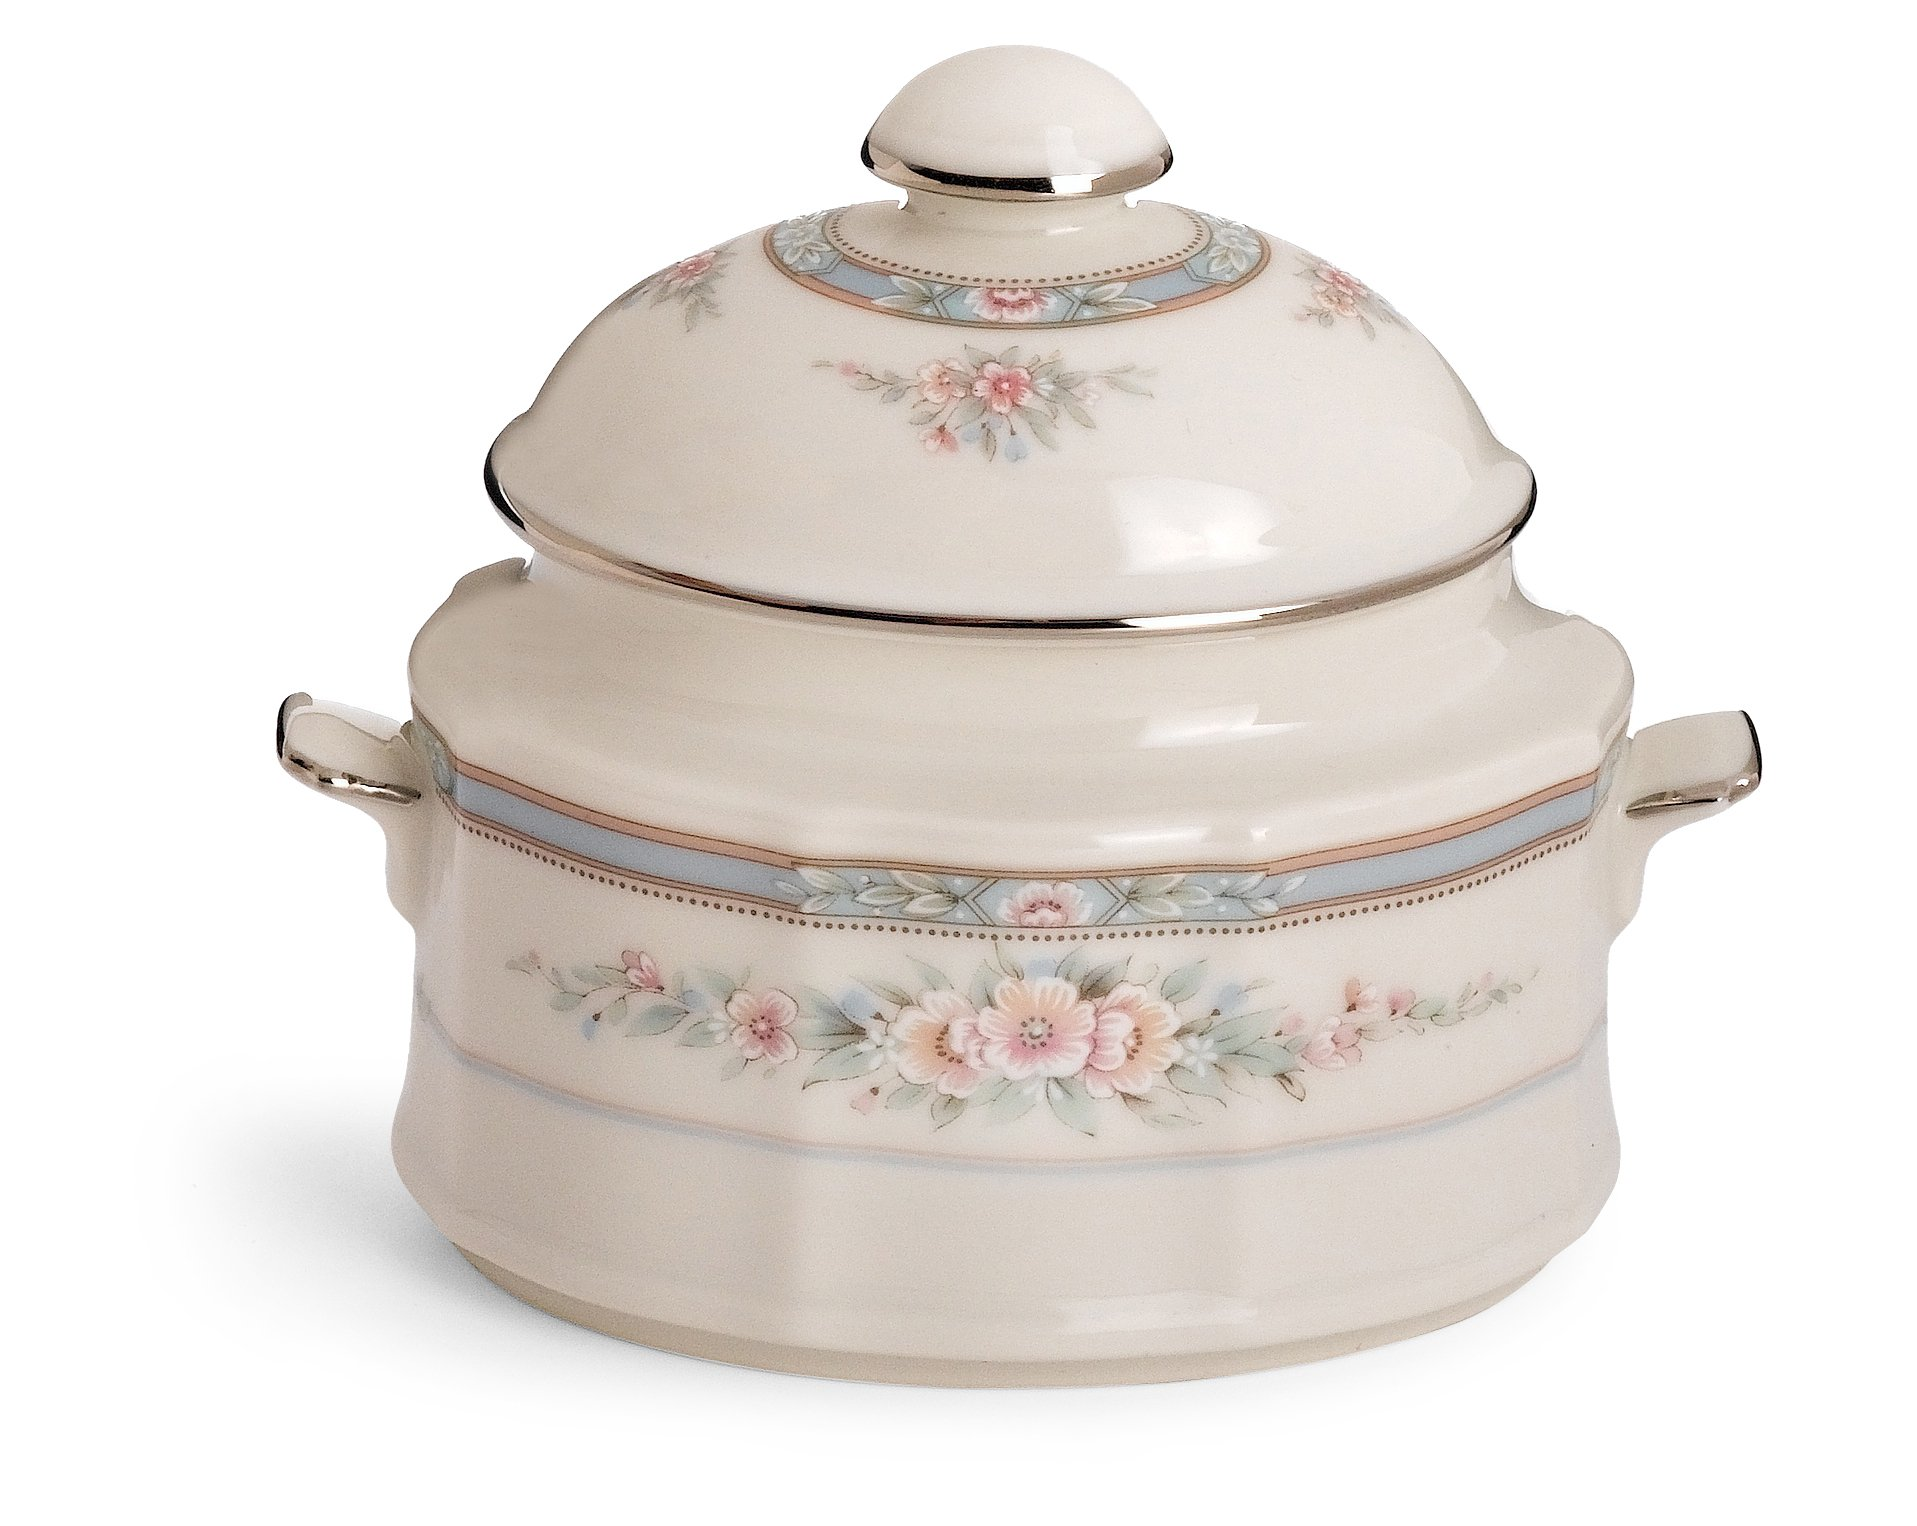 Noritake Rothschild Sugar Bowl with Cover